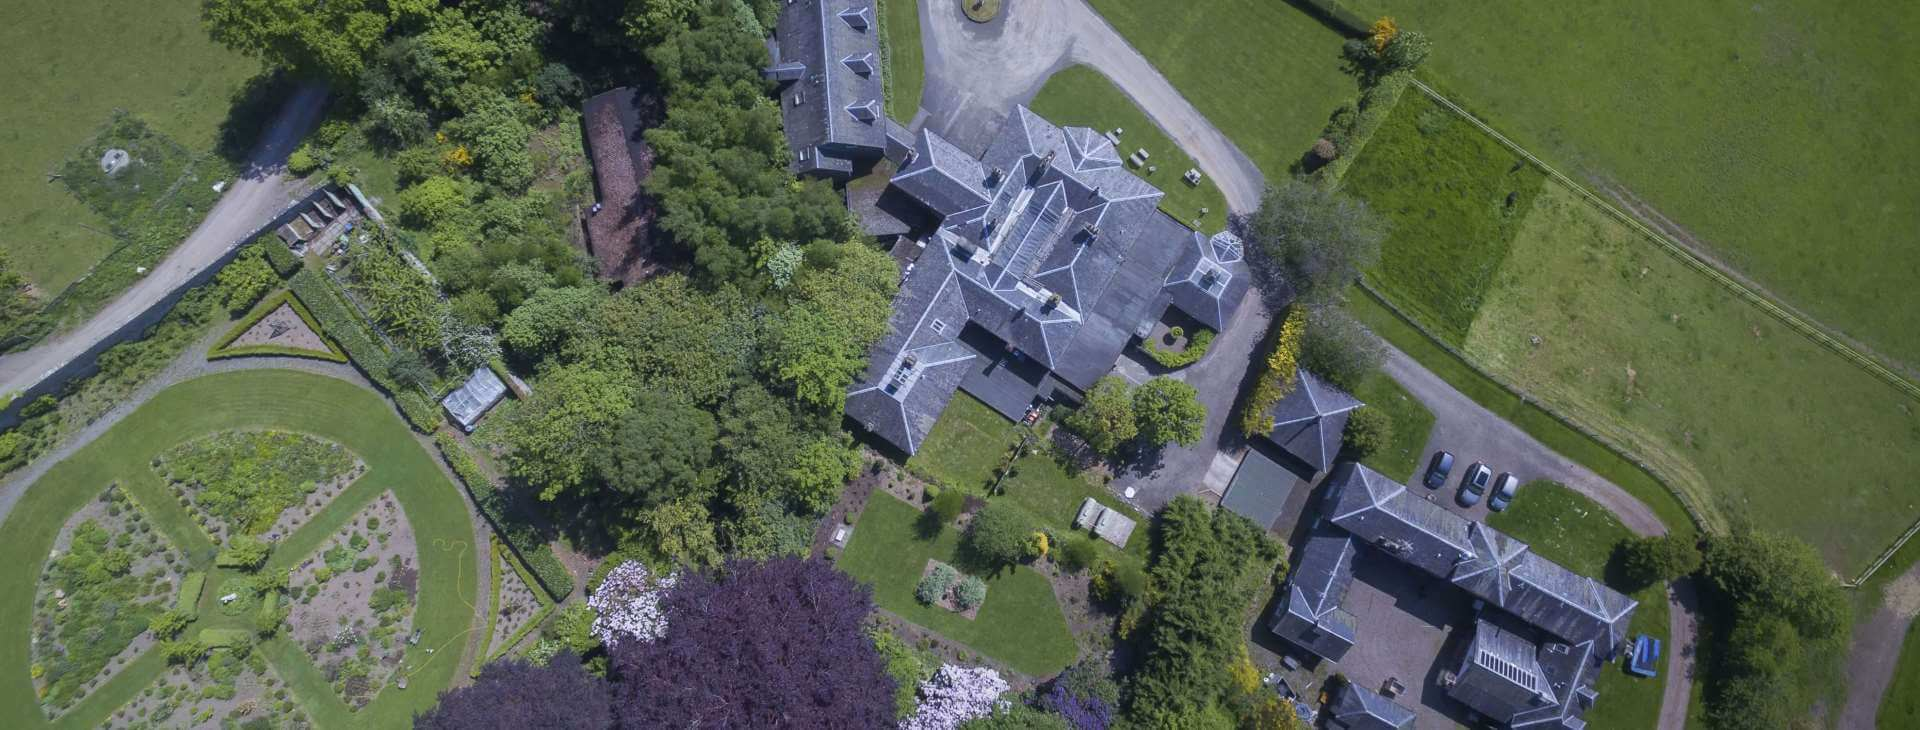 Meetings and Events at Kinloch House